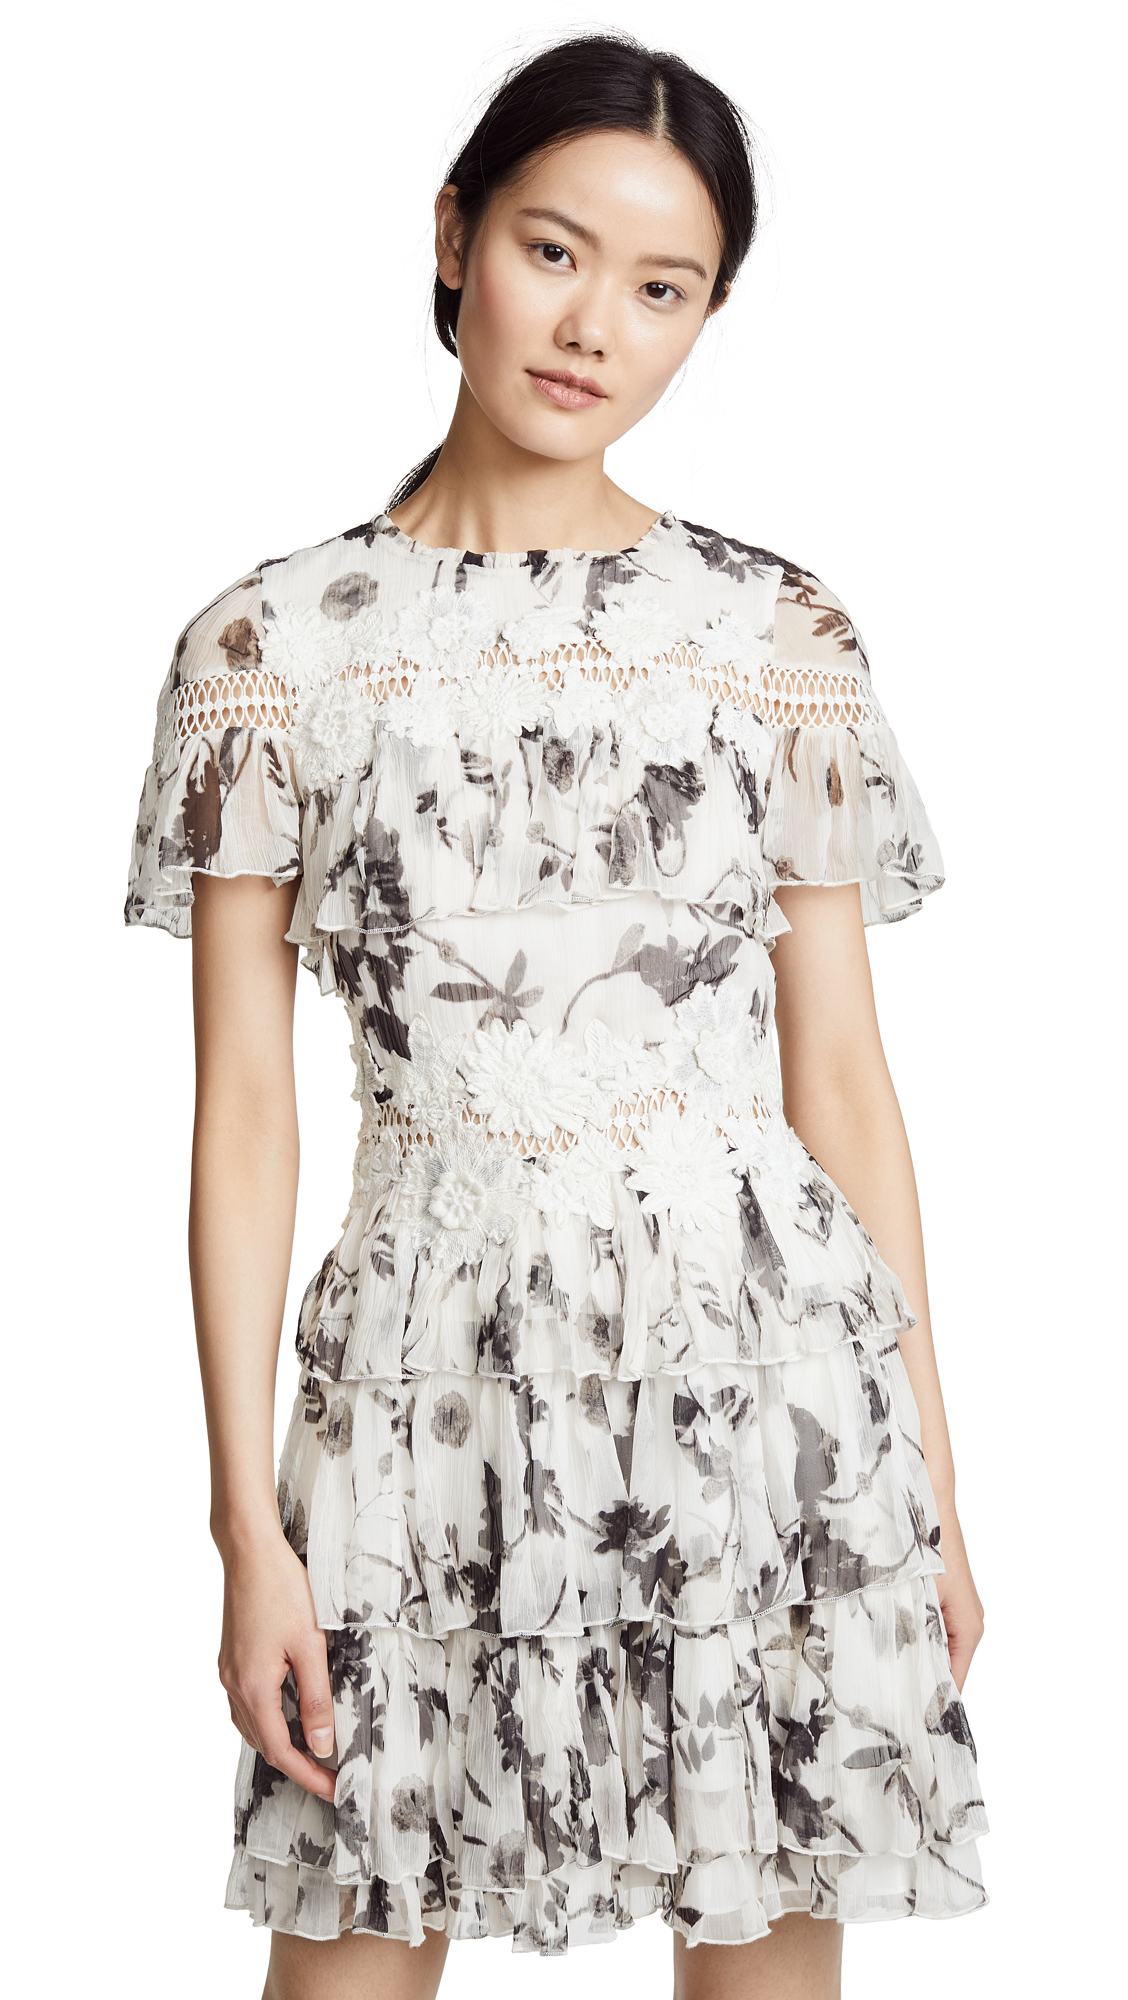 alice + olivia Paola Ruffle Dress In Floral Crown